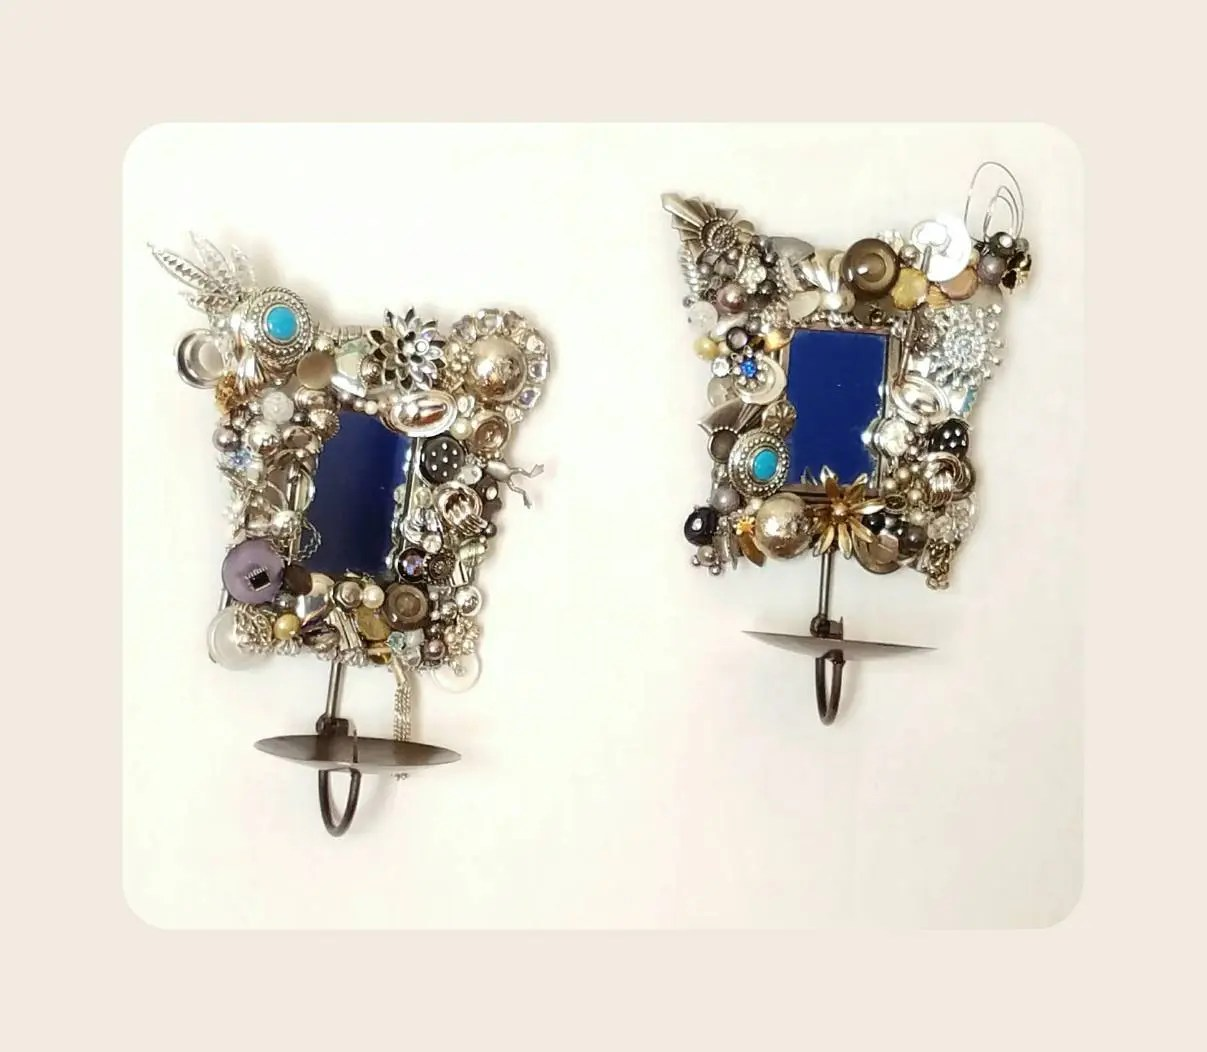 Jeweled Wall Sconces Silver Candle Holders Mixed media on Silver Wall Sconces For Candles id=78577